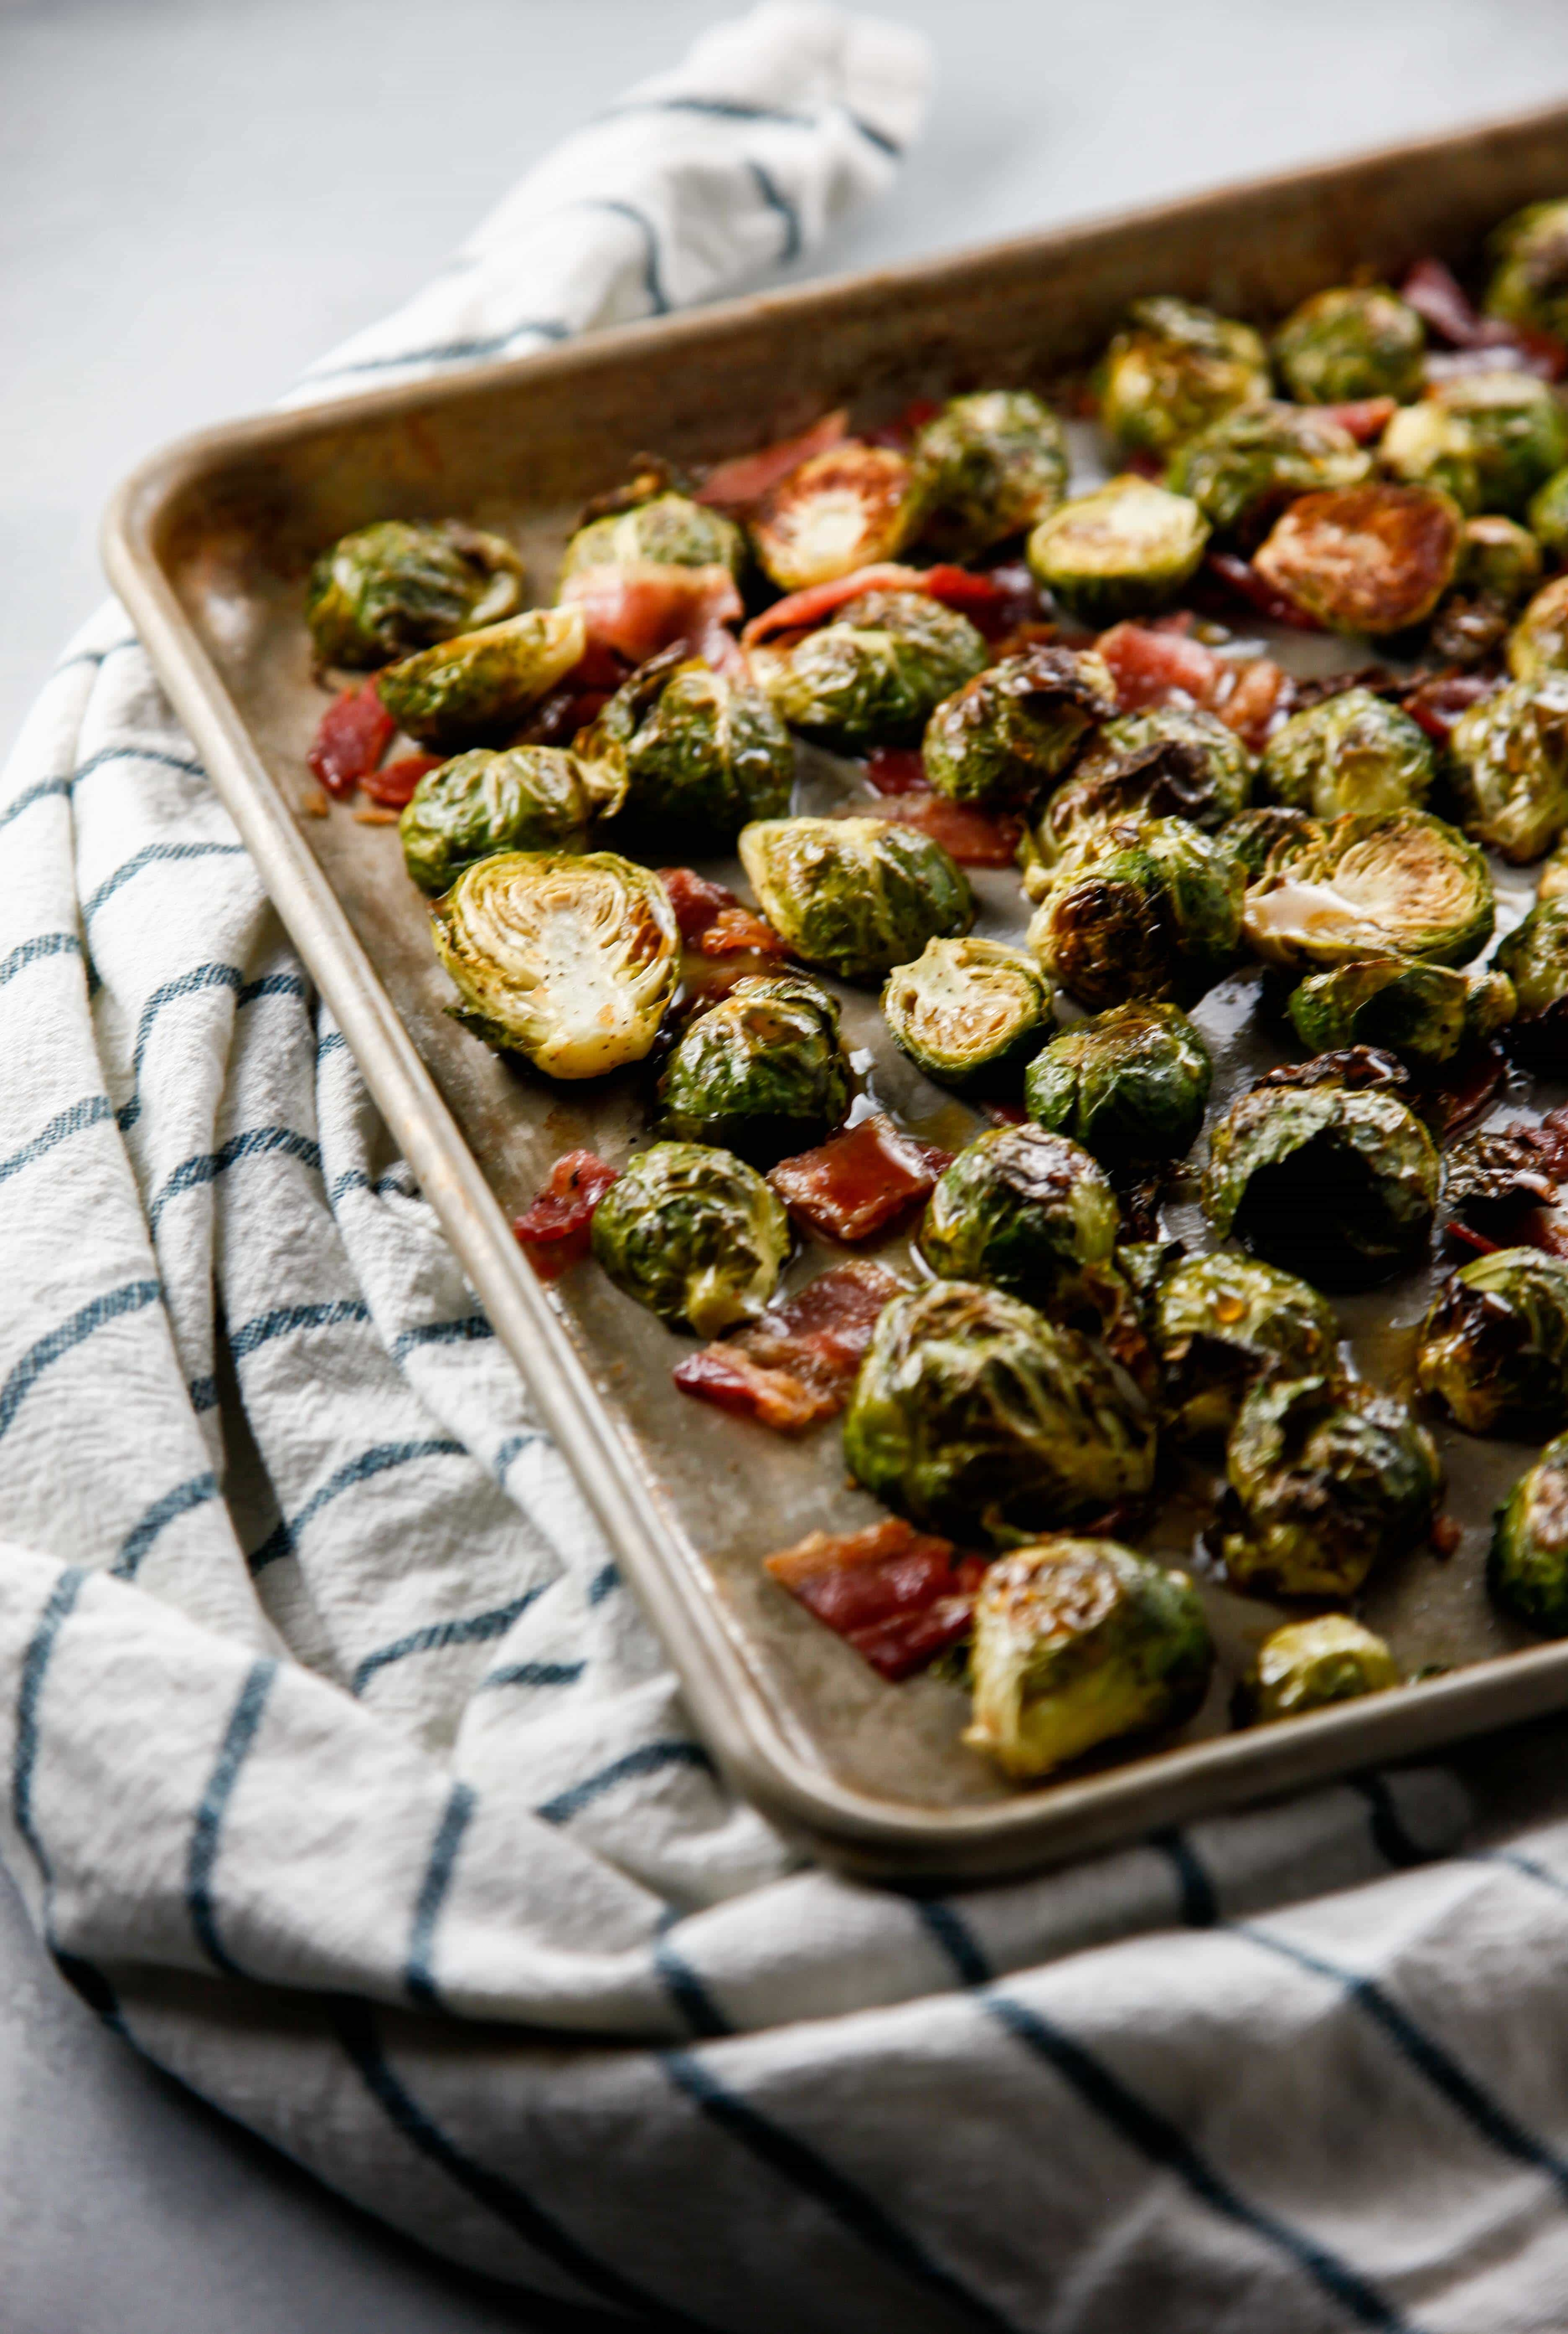 Best Easy Thanksgiving Side Dish Recipes. This round-up brings you some of the best easy side dish recipes from around the web.